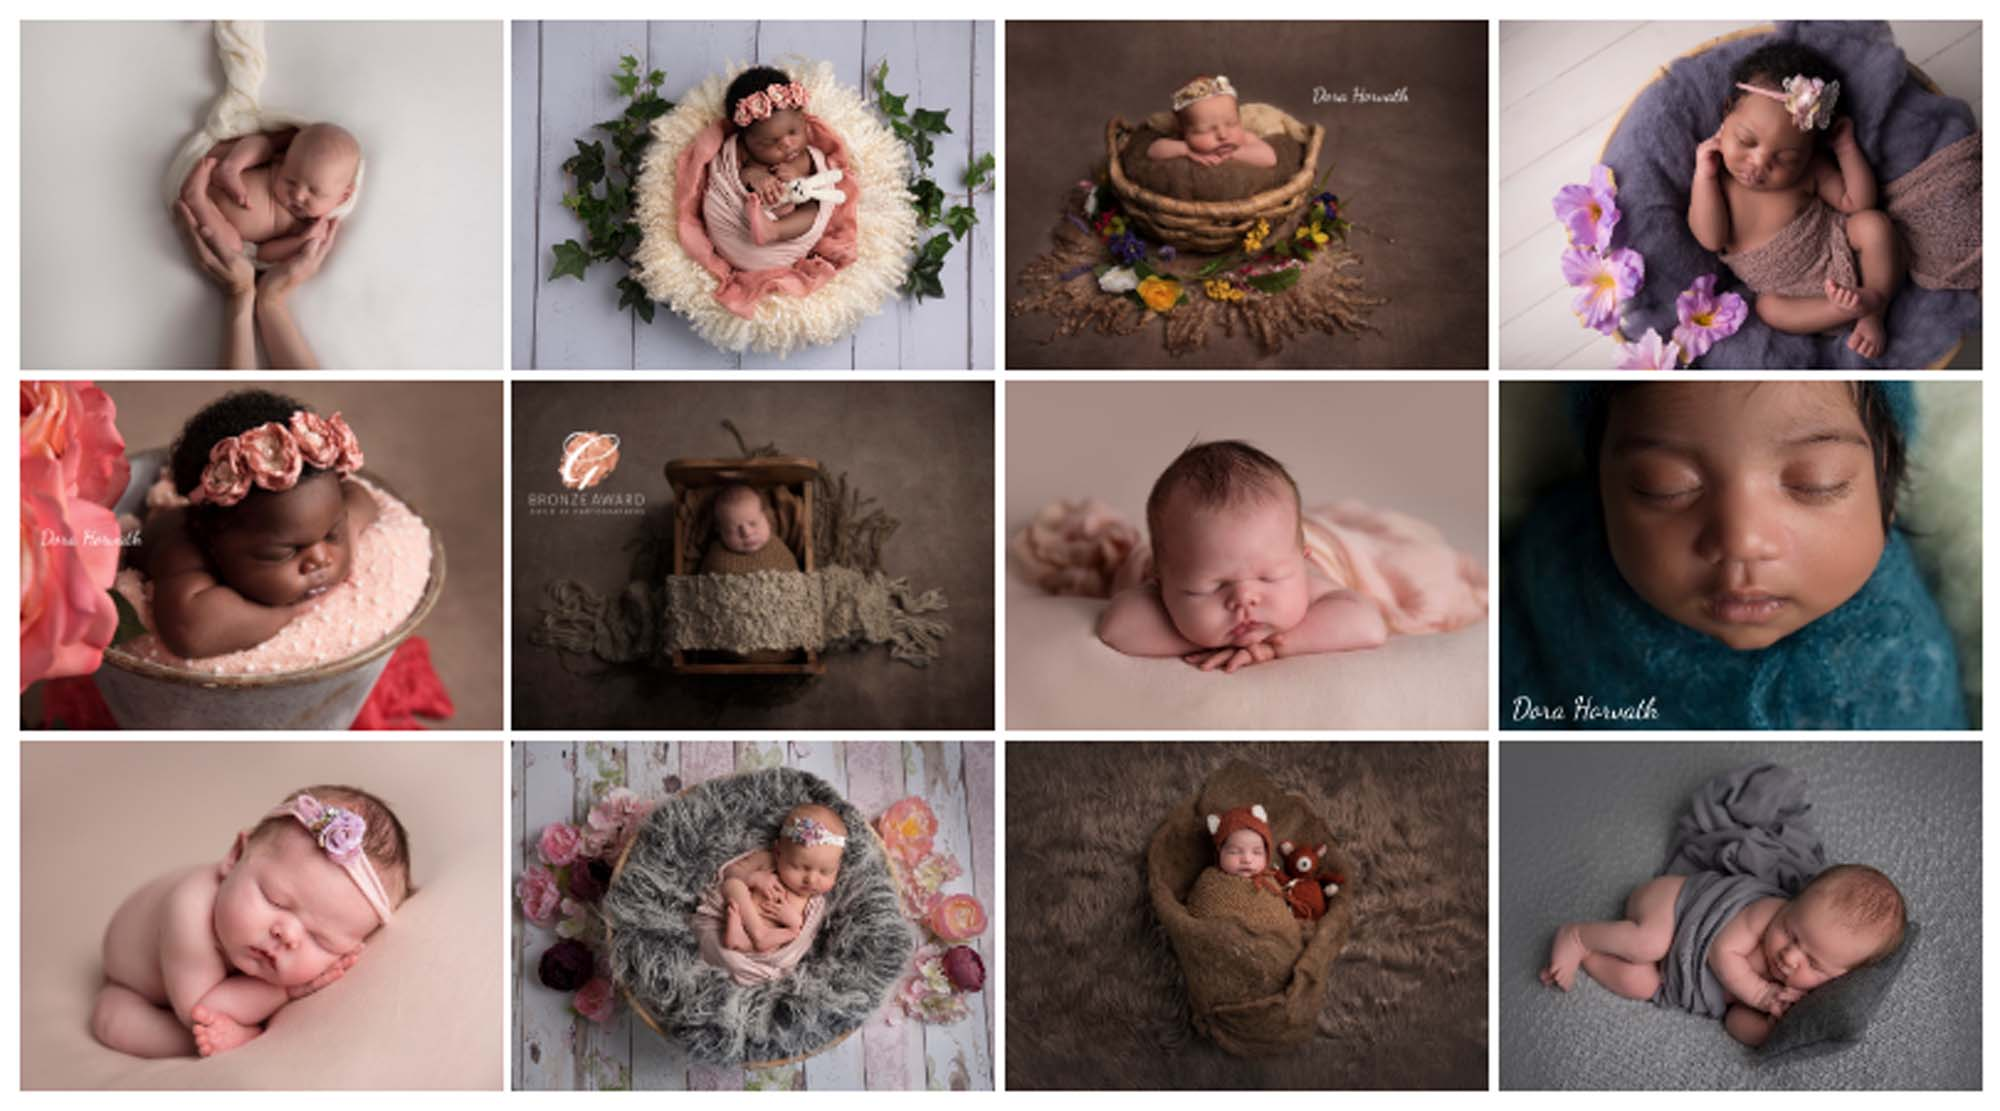 photographed by Newborn Photographer Manchester